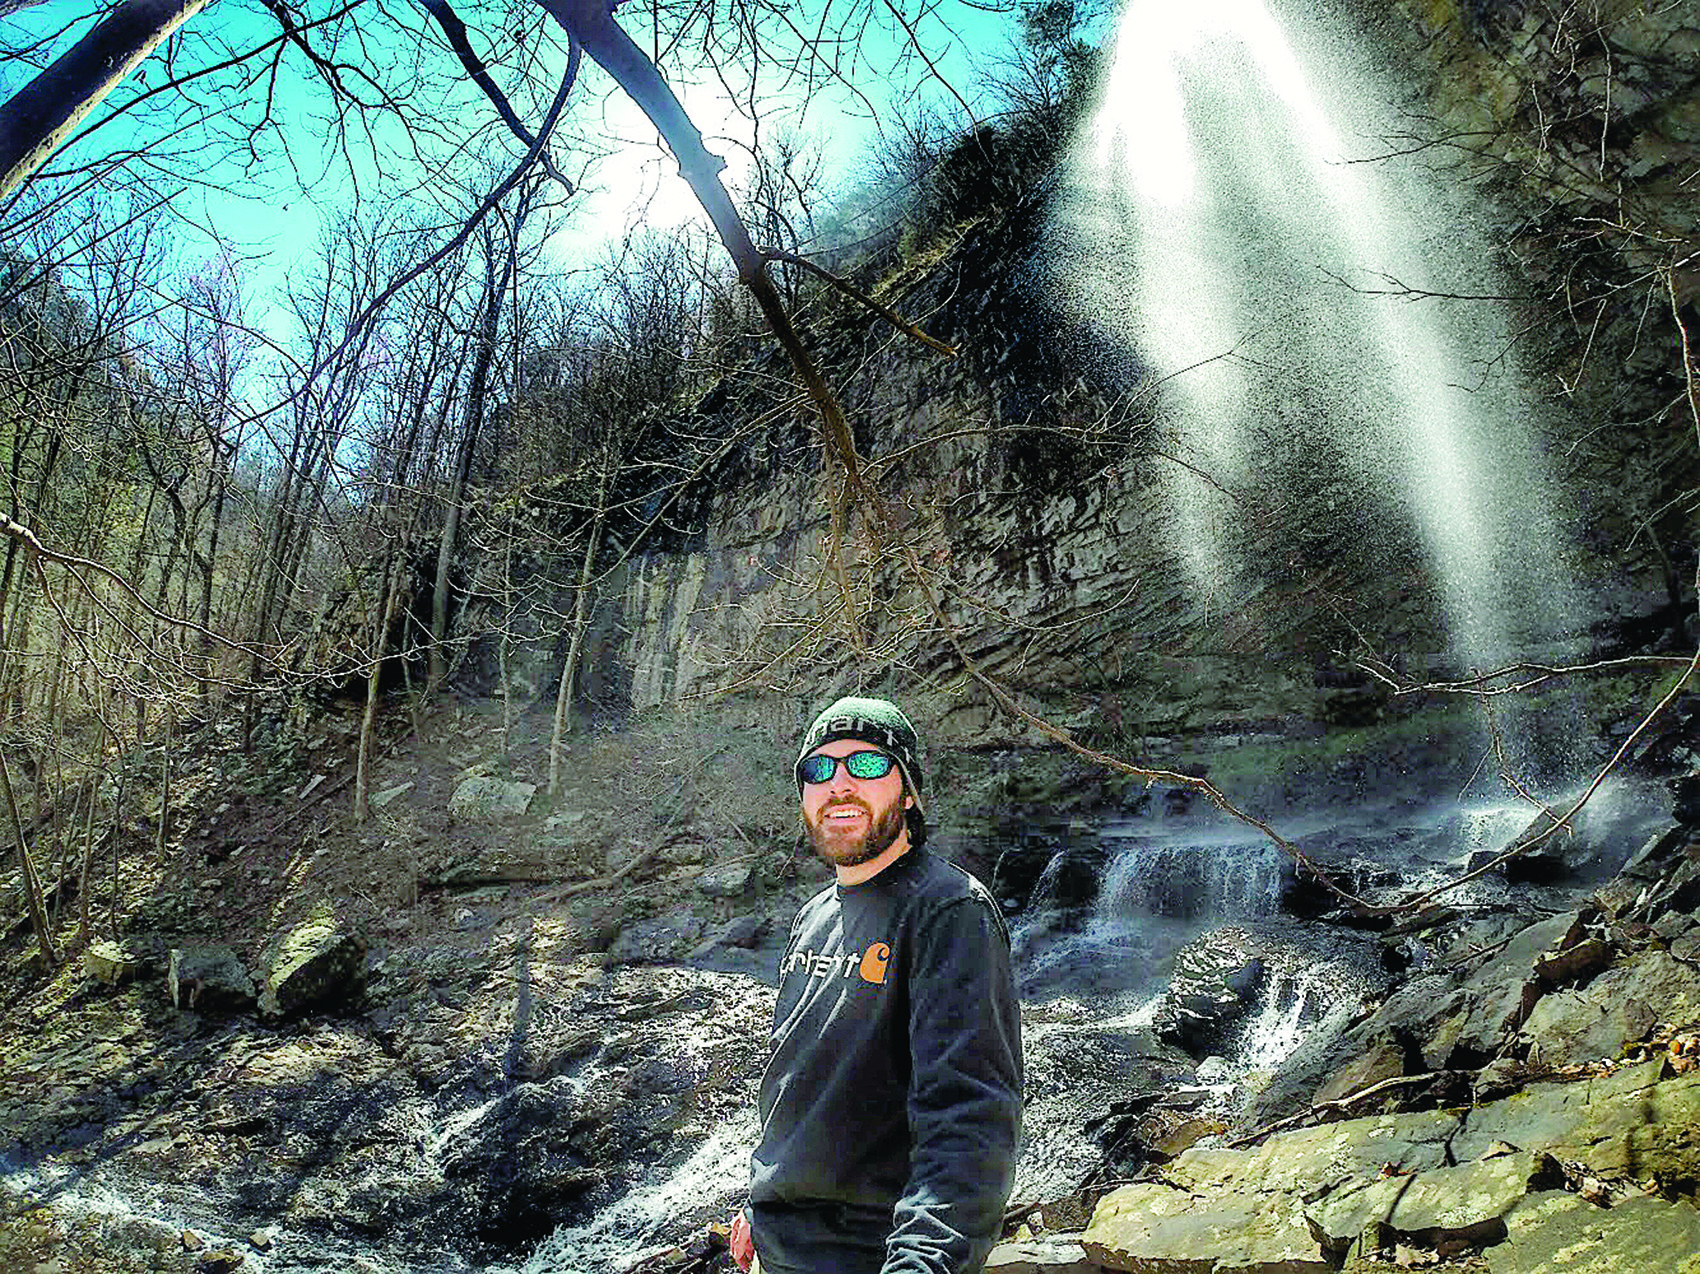 Brandon Carter, who will be hiking over 26 miles next month to raise money for Make-A-Wish Alabama, has been going on various training hikes. He recently hiked Cloudland Canyon State Park in Trenton, Georiga.